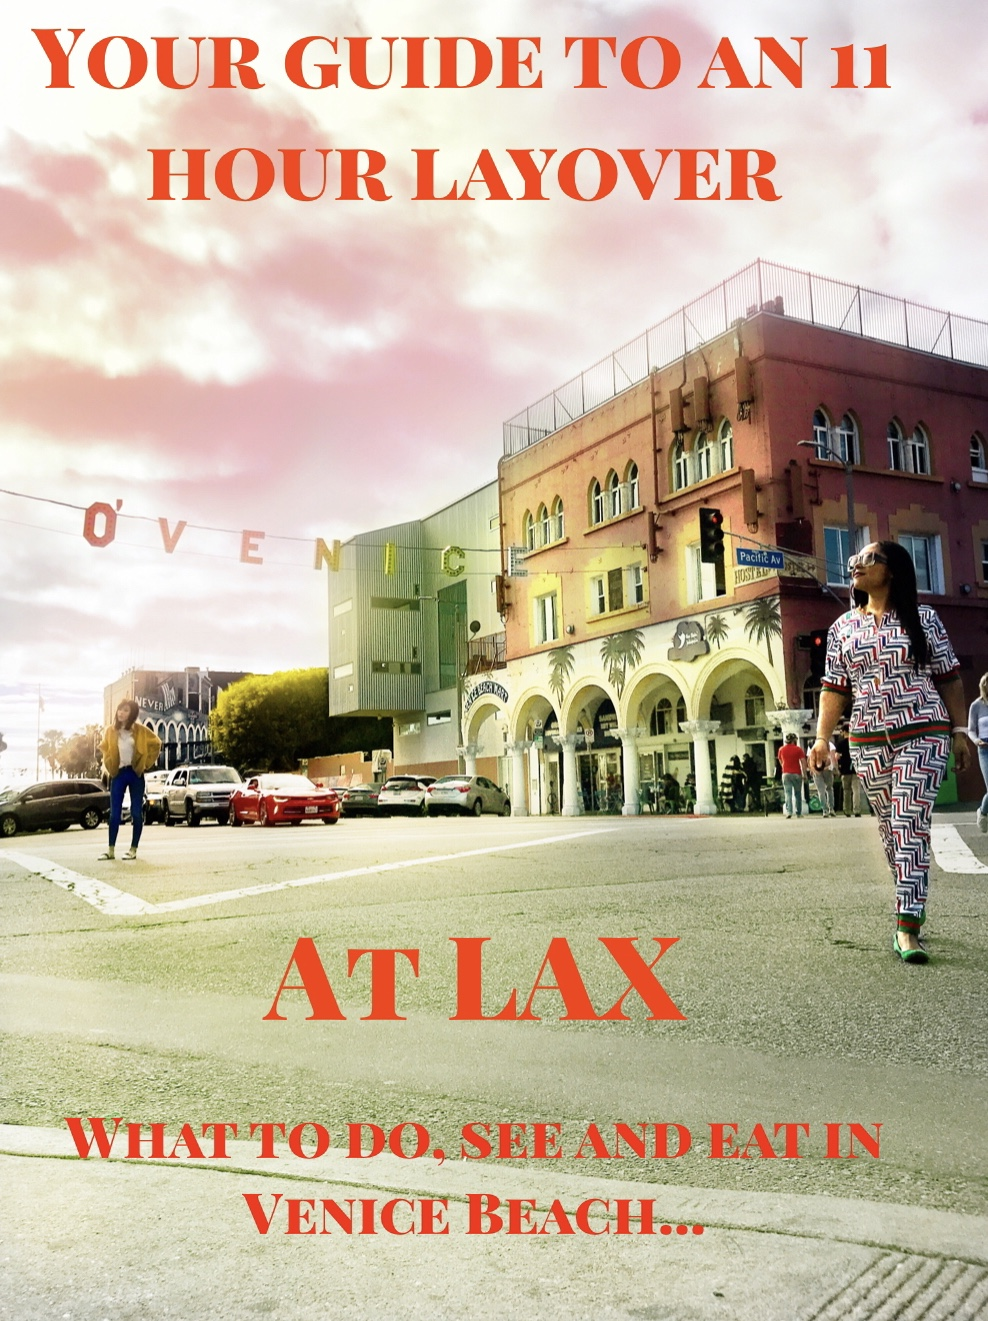 Your guide to an 11 hour layover at LAX! What to do, see and eat in Venice Beach.